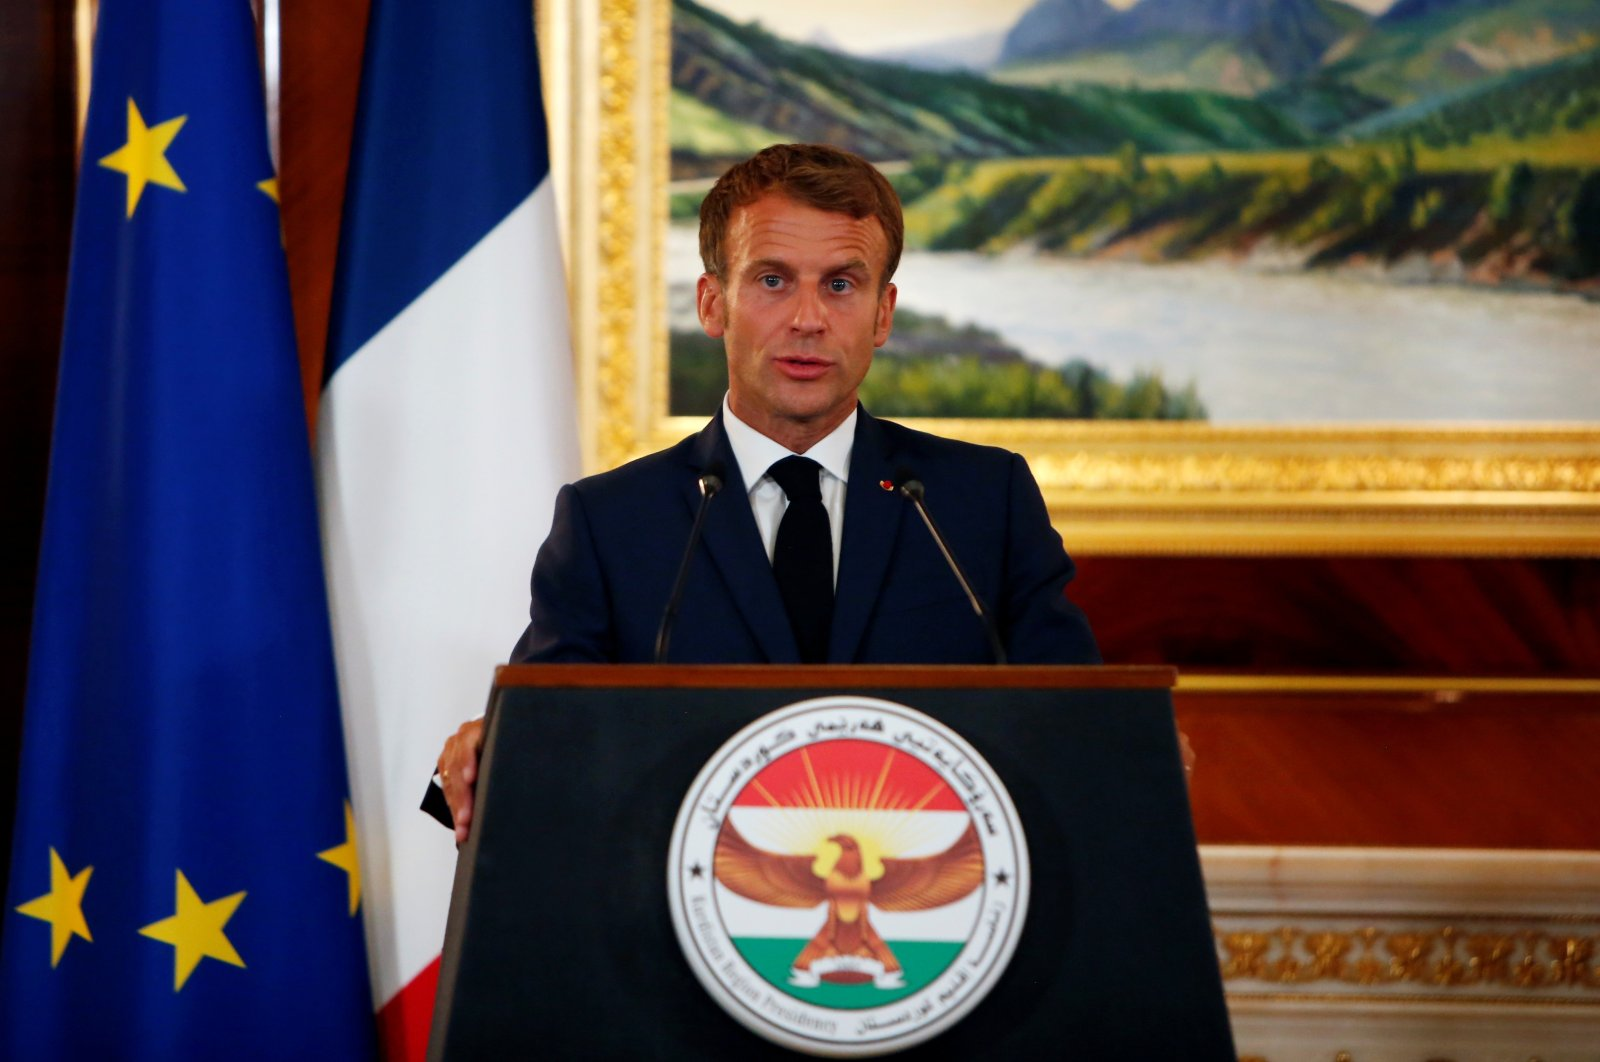 French President Emmanuel Macron speaks during a news conference with KRG president Nechirvan Barzani, in Irbil, Iraq, Aug. 29, 2021. (Reuters Photo)